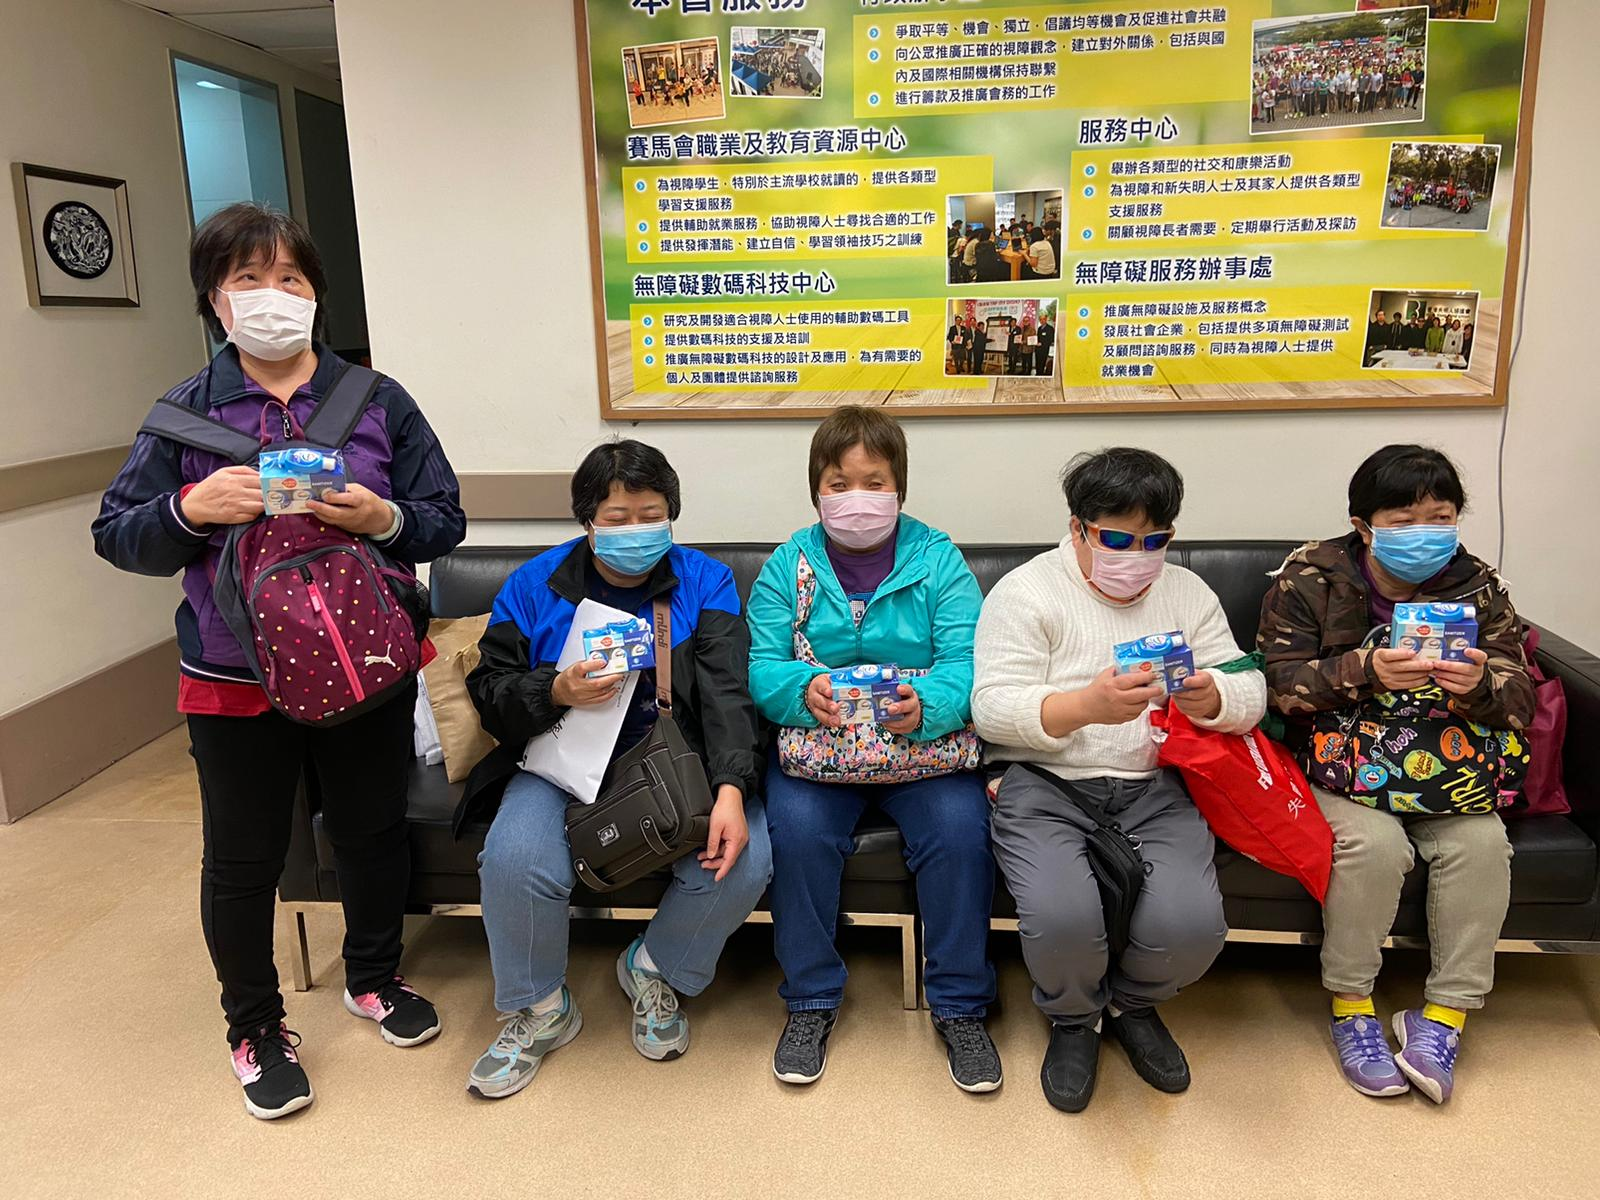 The visually impaired individuals' sense of touch is crucial. With the shortage of disinfectant, however, they're at greater risk of catching the virus when they go out. It's especially crucial for them that they have hand sanitizer and wipes.。